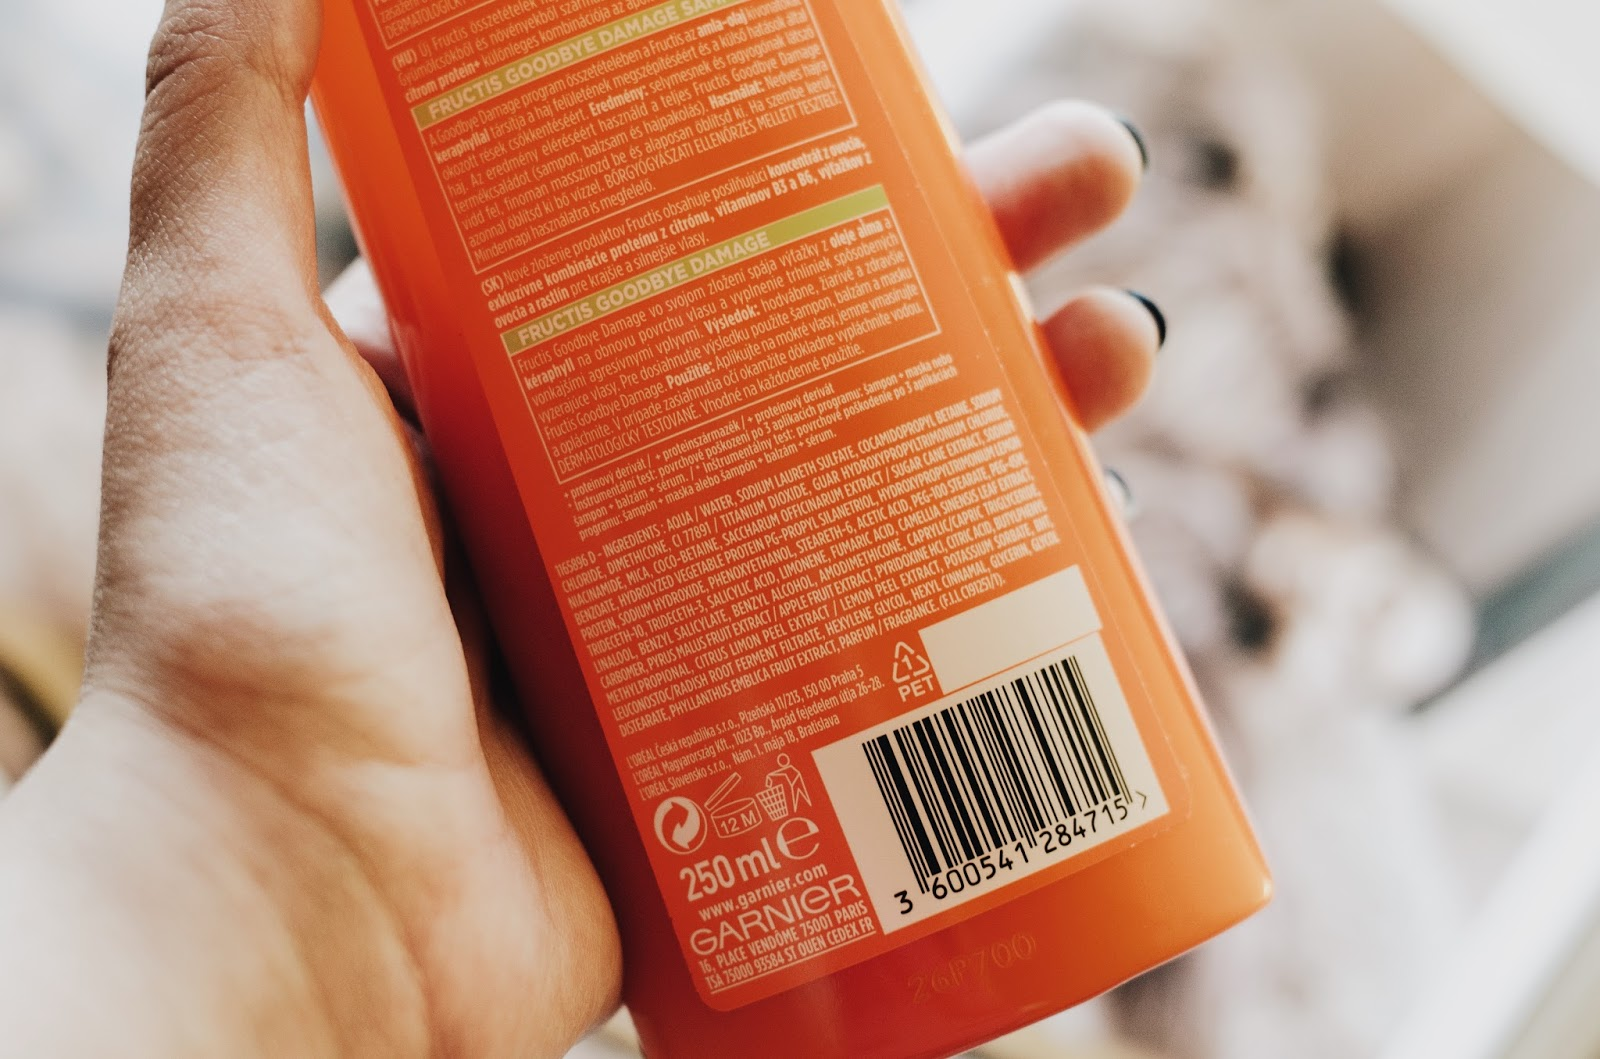 garnier_fructis_goodbye_damage_shampoo_ingredients